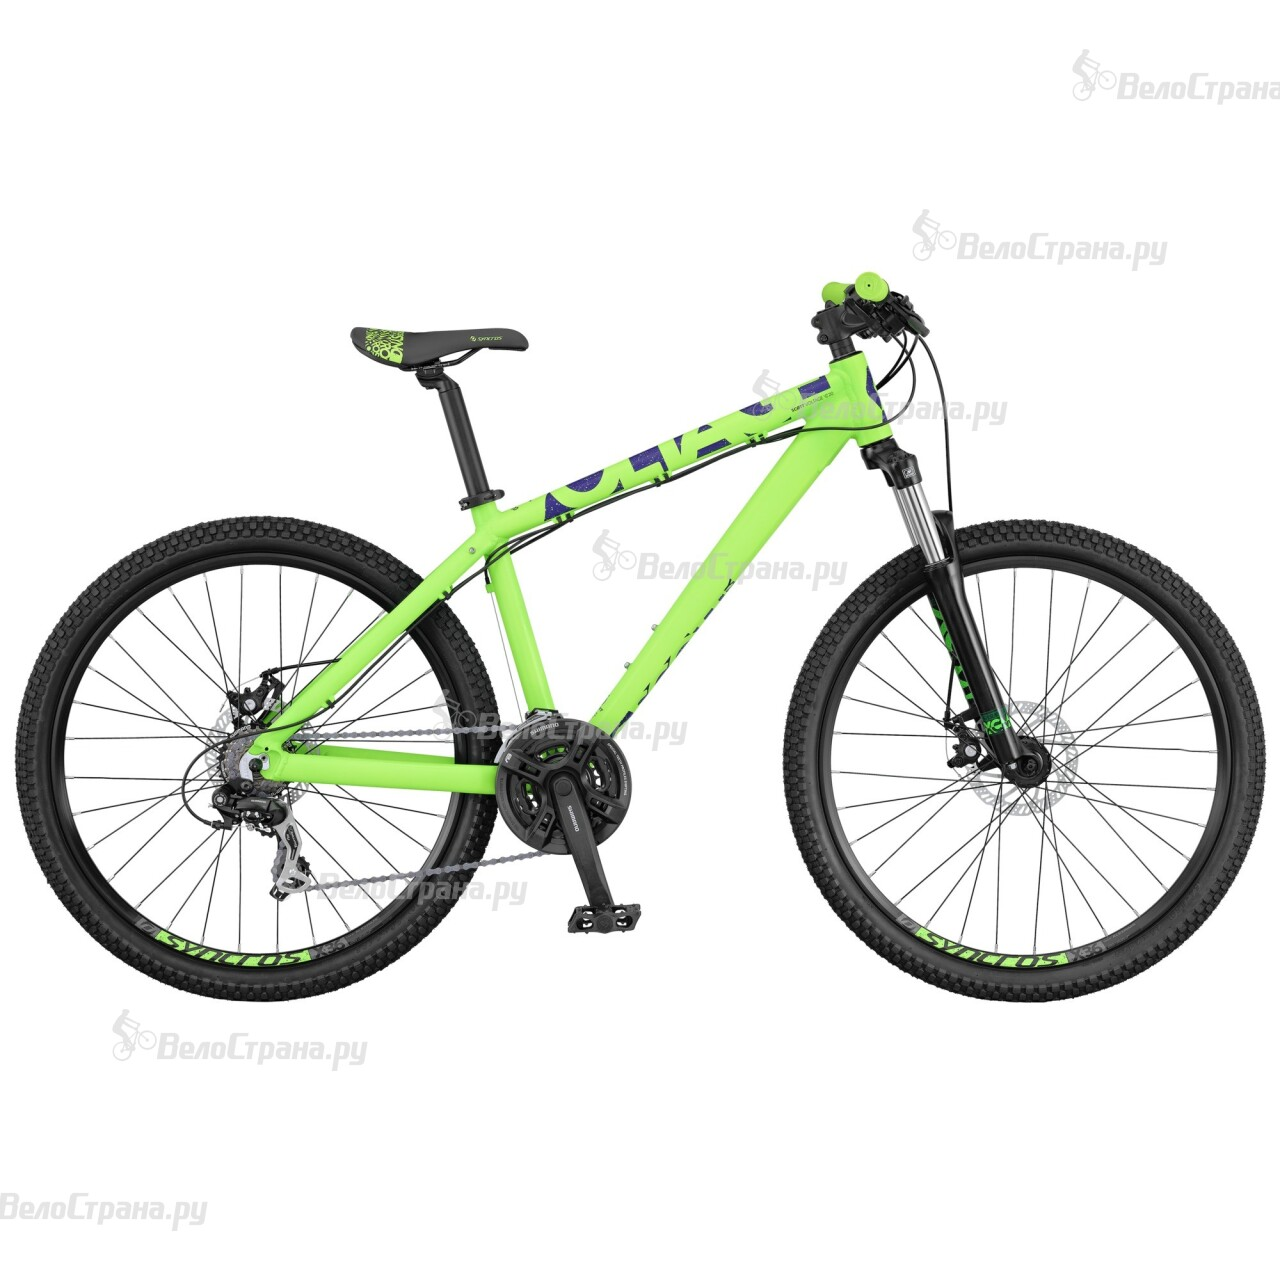 Велосипед Scott Voltage YZ 20 (2016) велосипед scott voltage yz 20 2014